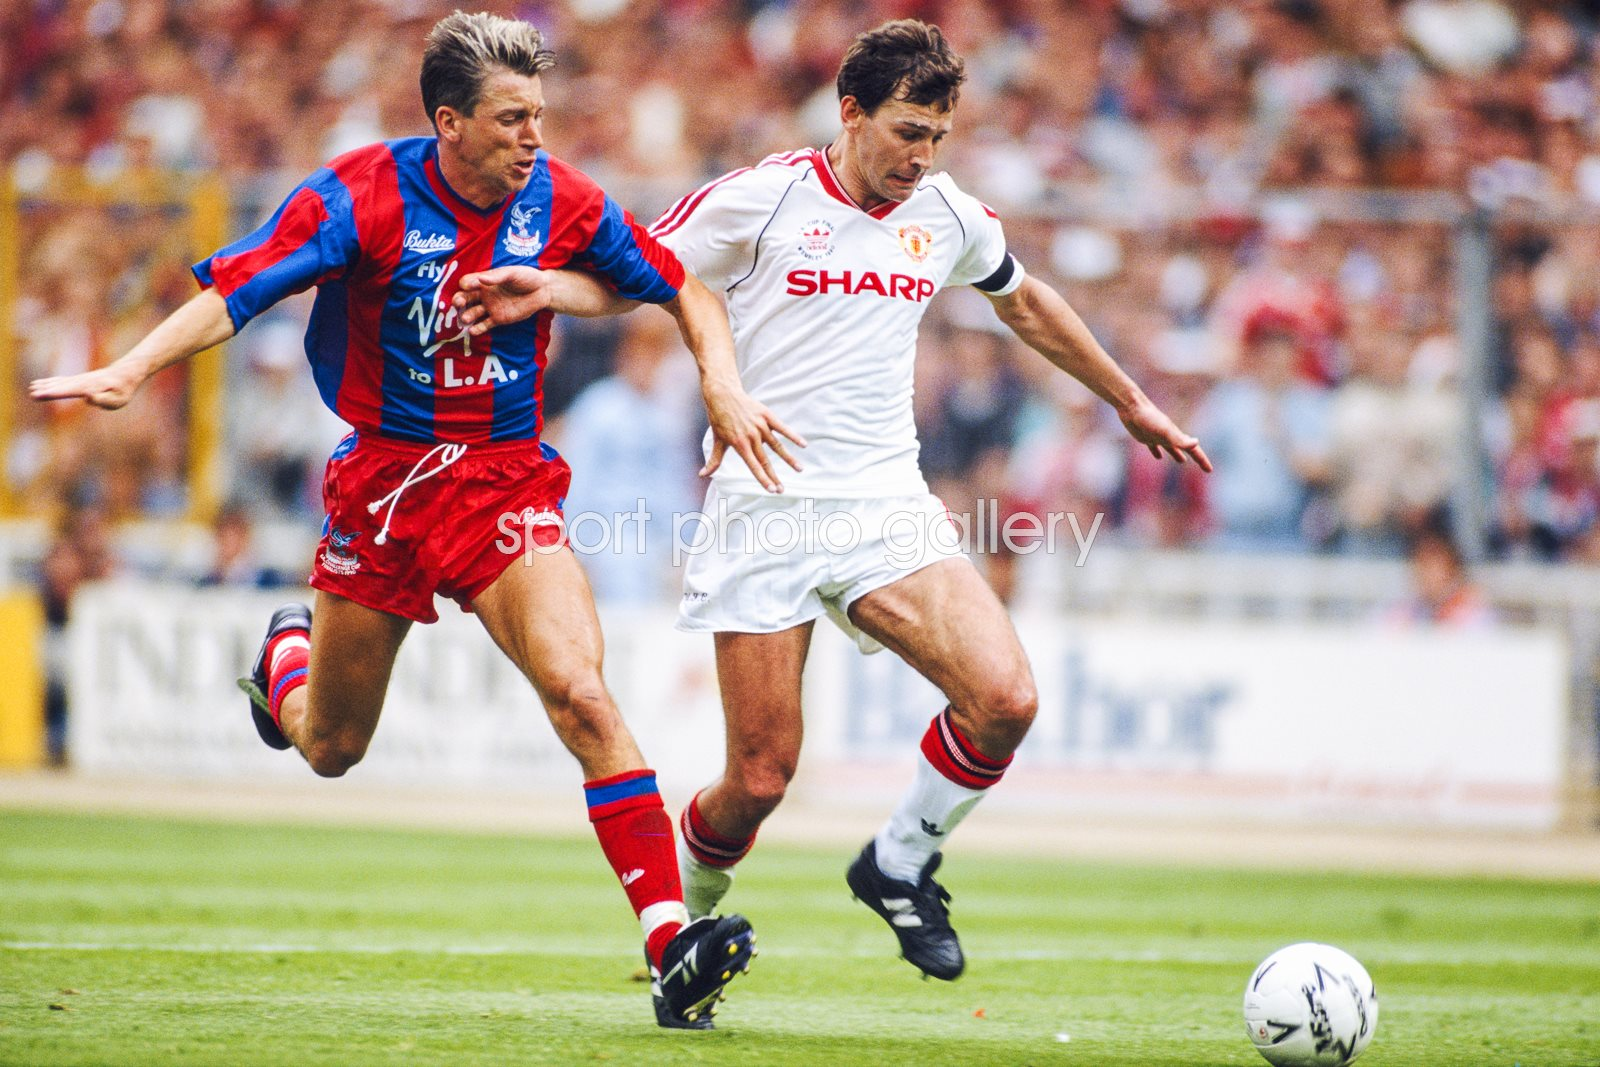 Alan Pardew Crystal Palace v Bryan Robson Manchester United FA Cup Final 1990